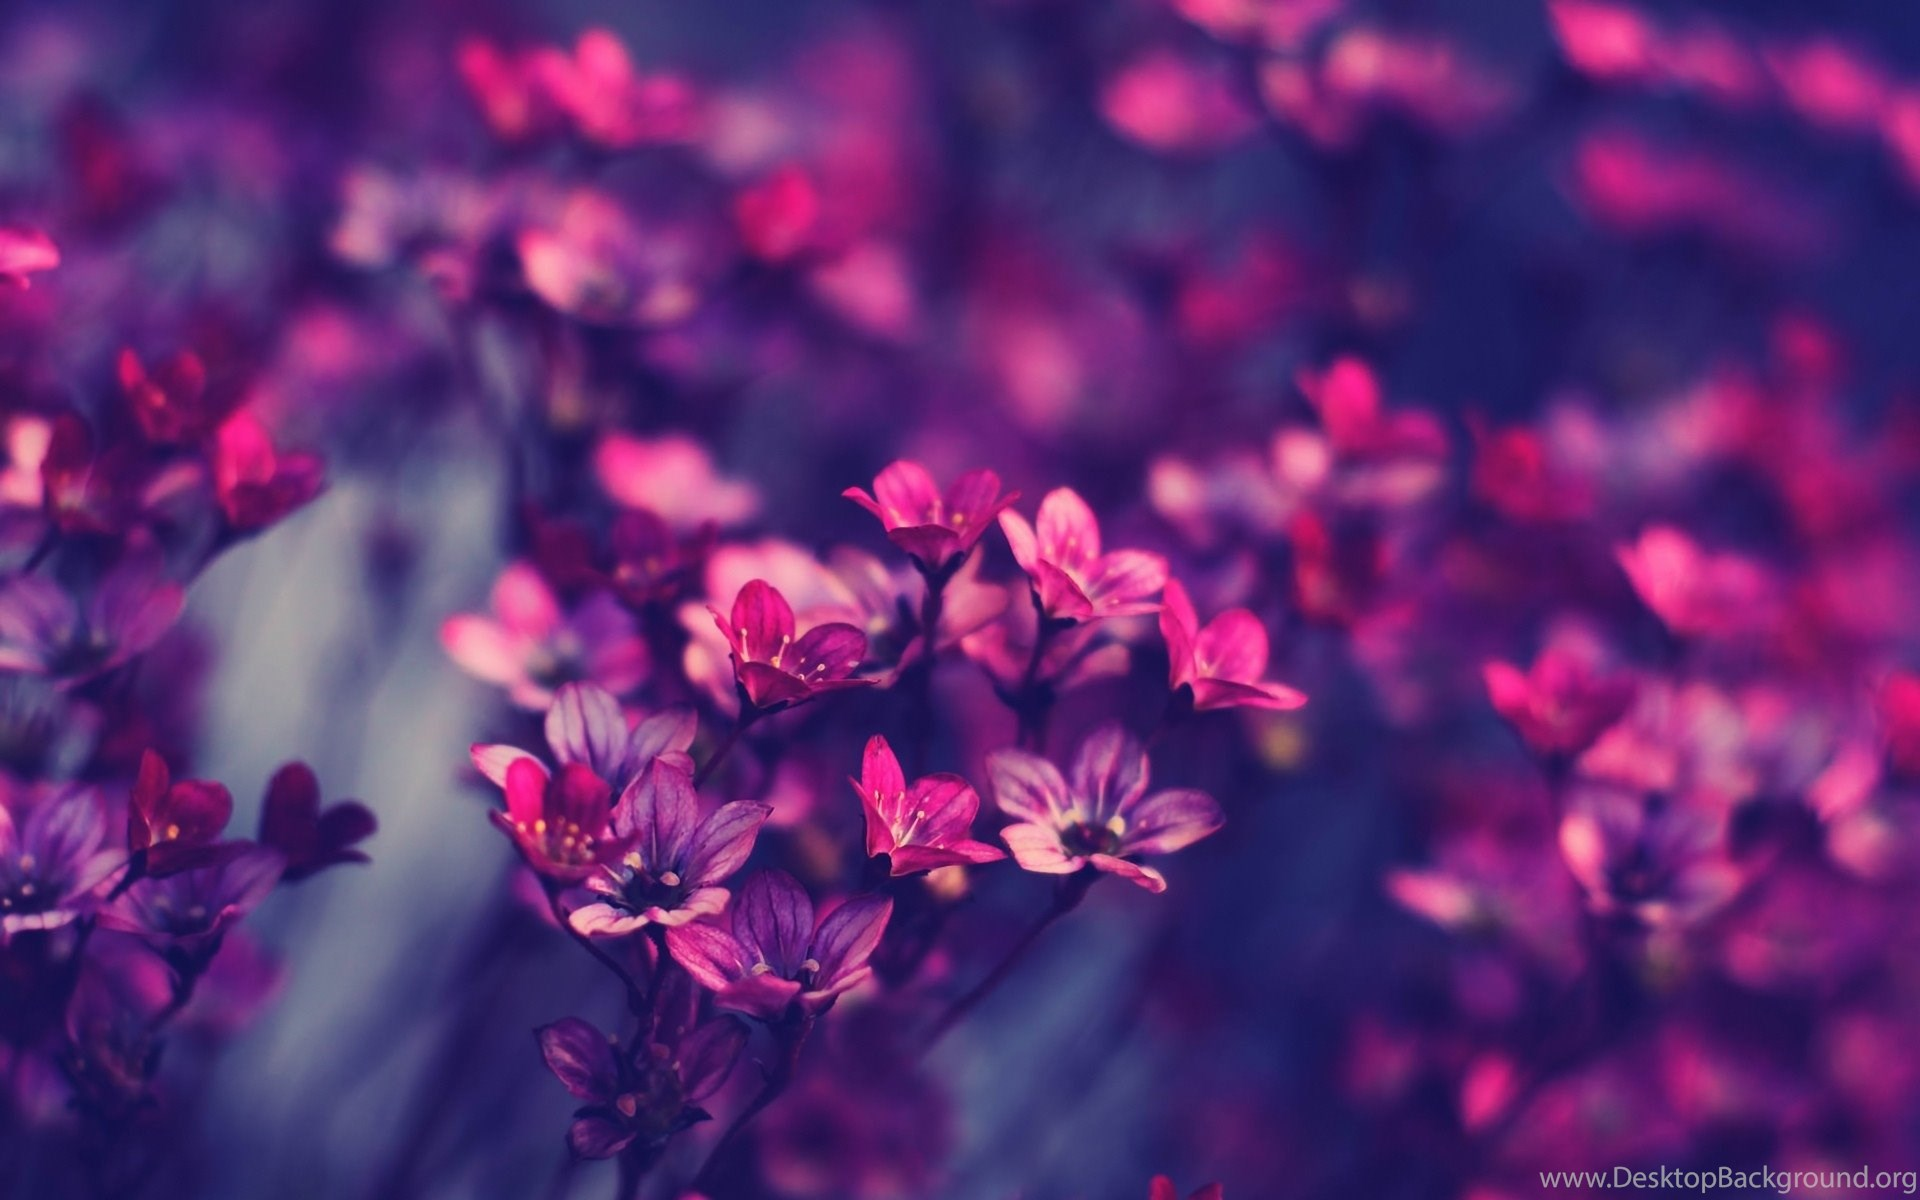 Floral Backgrounds Tumblr Wallpaper Images Kemecer Com Desktop